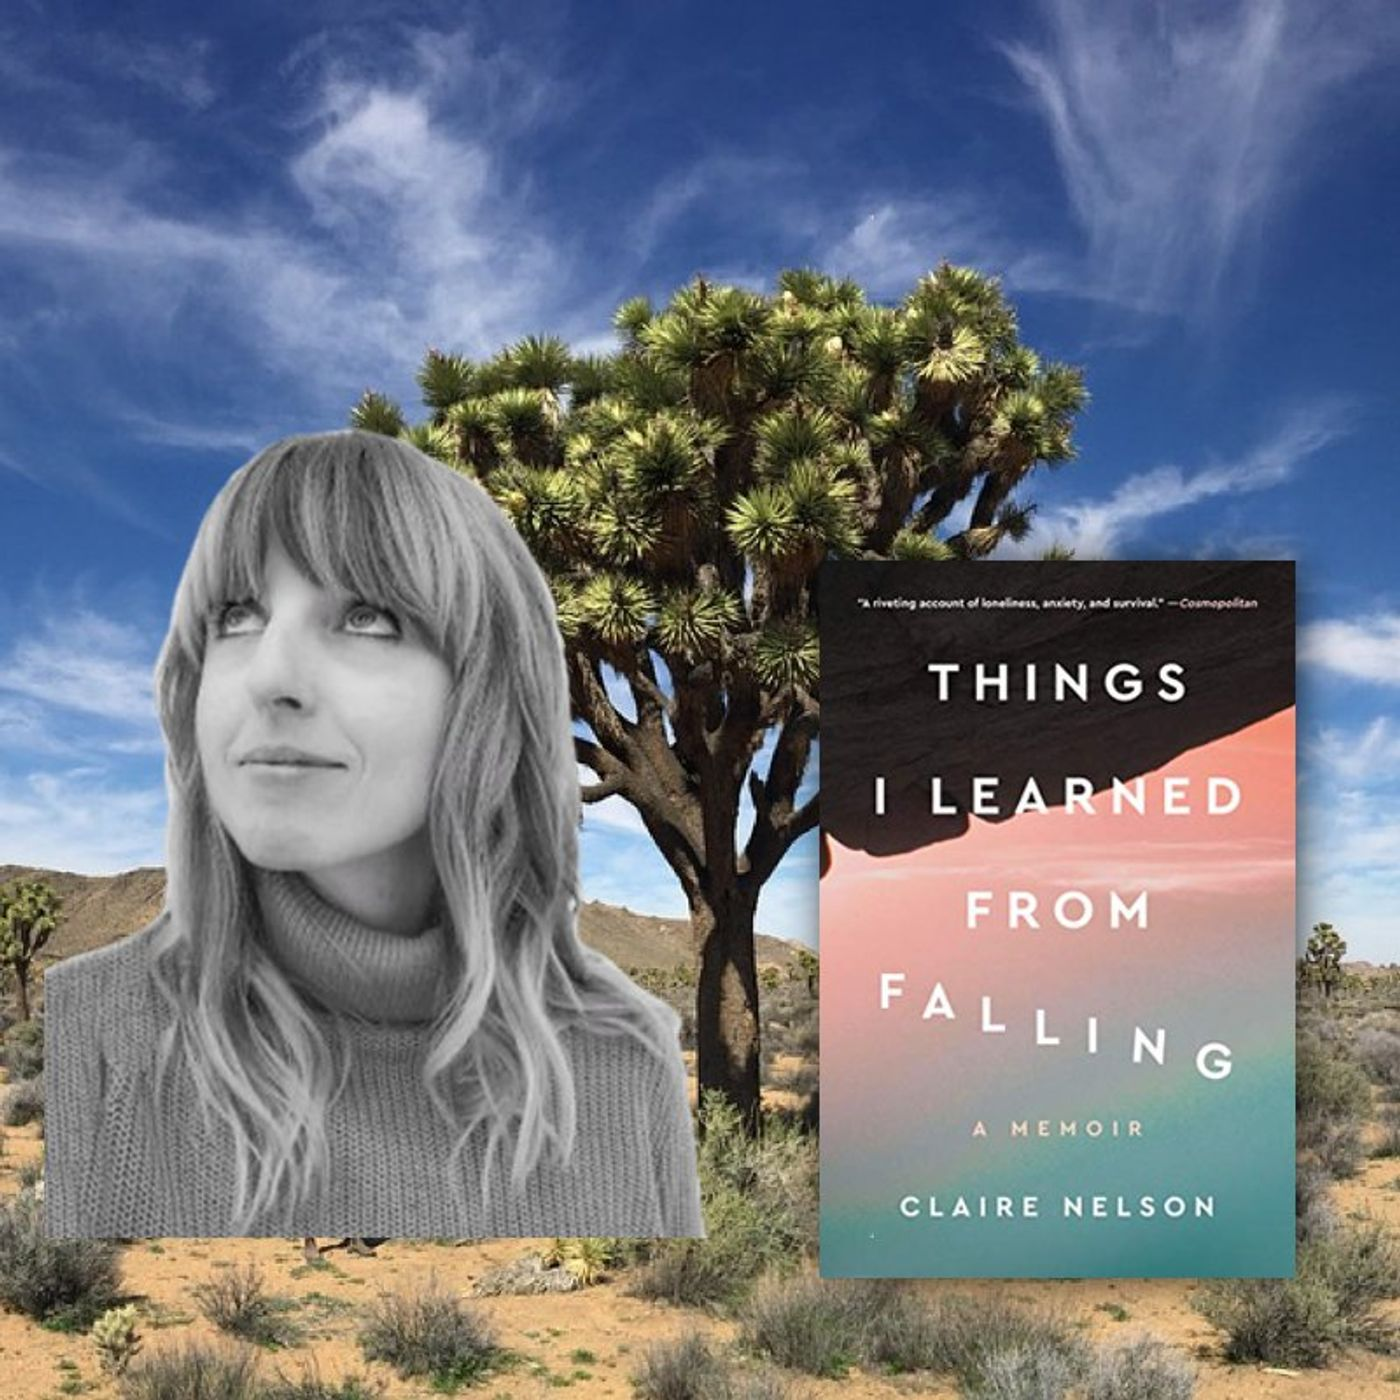 Things I Learned from Falling with Claire Nelson